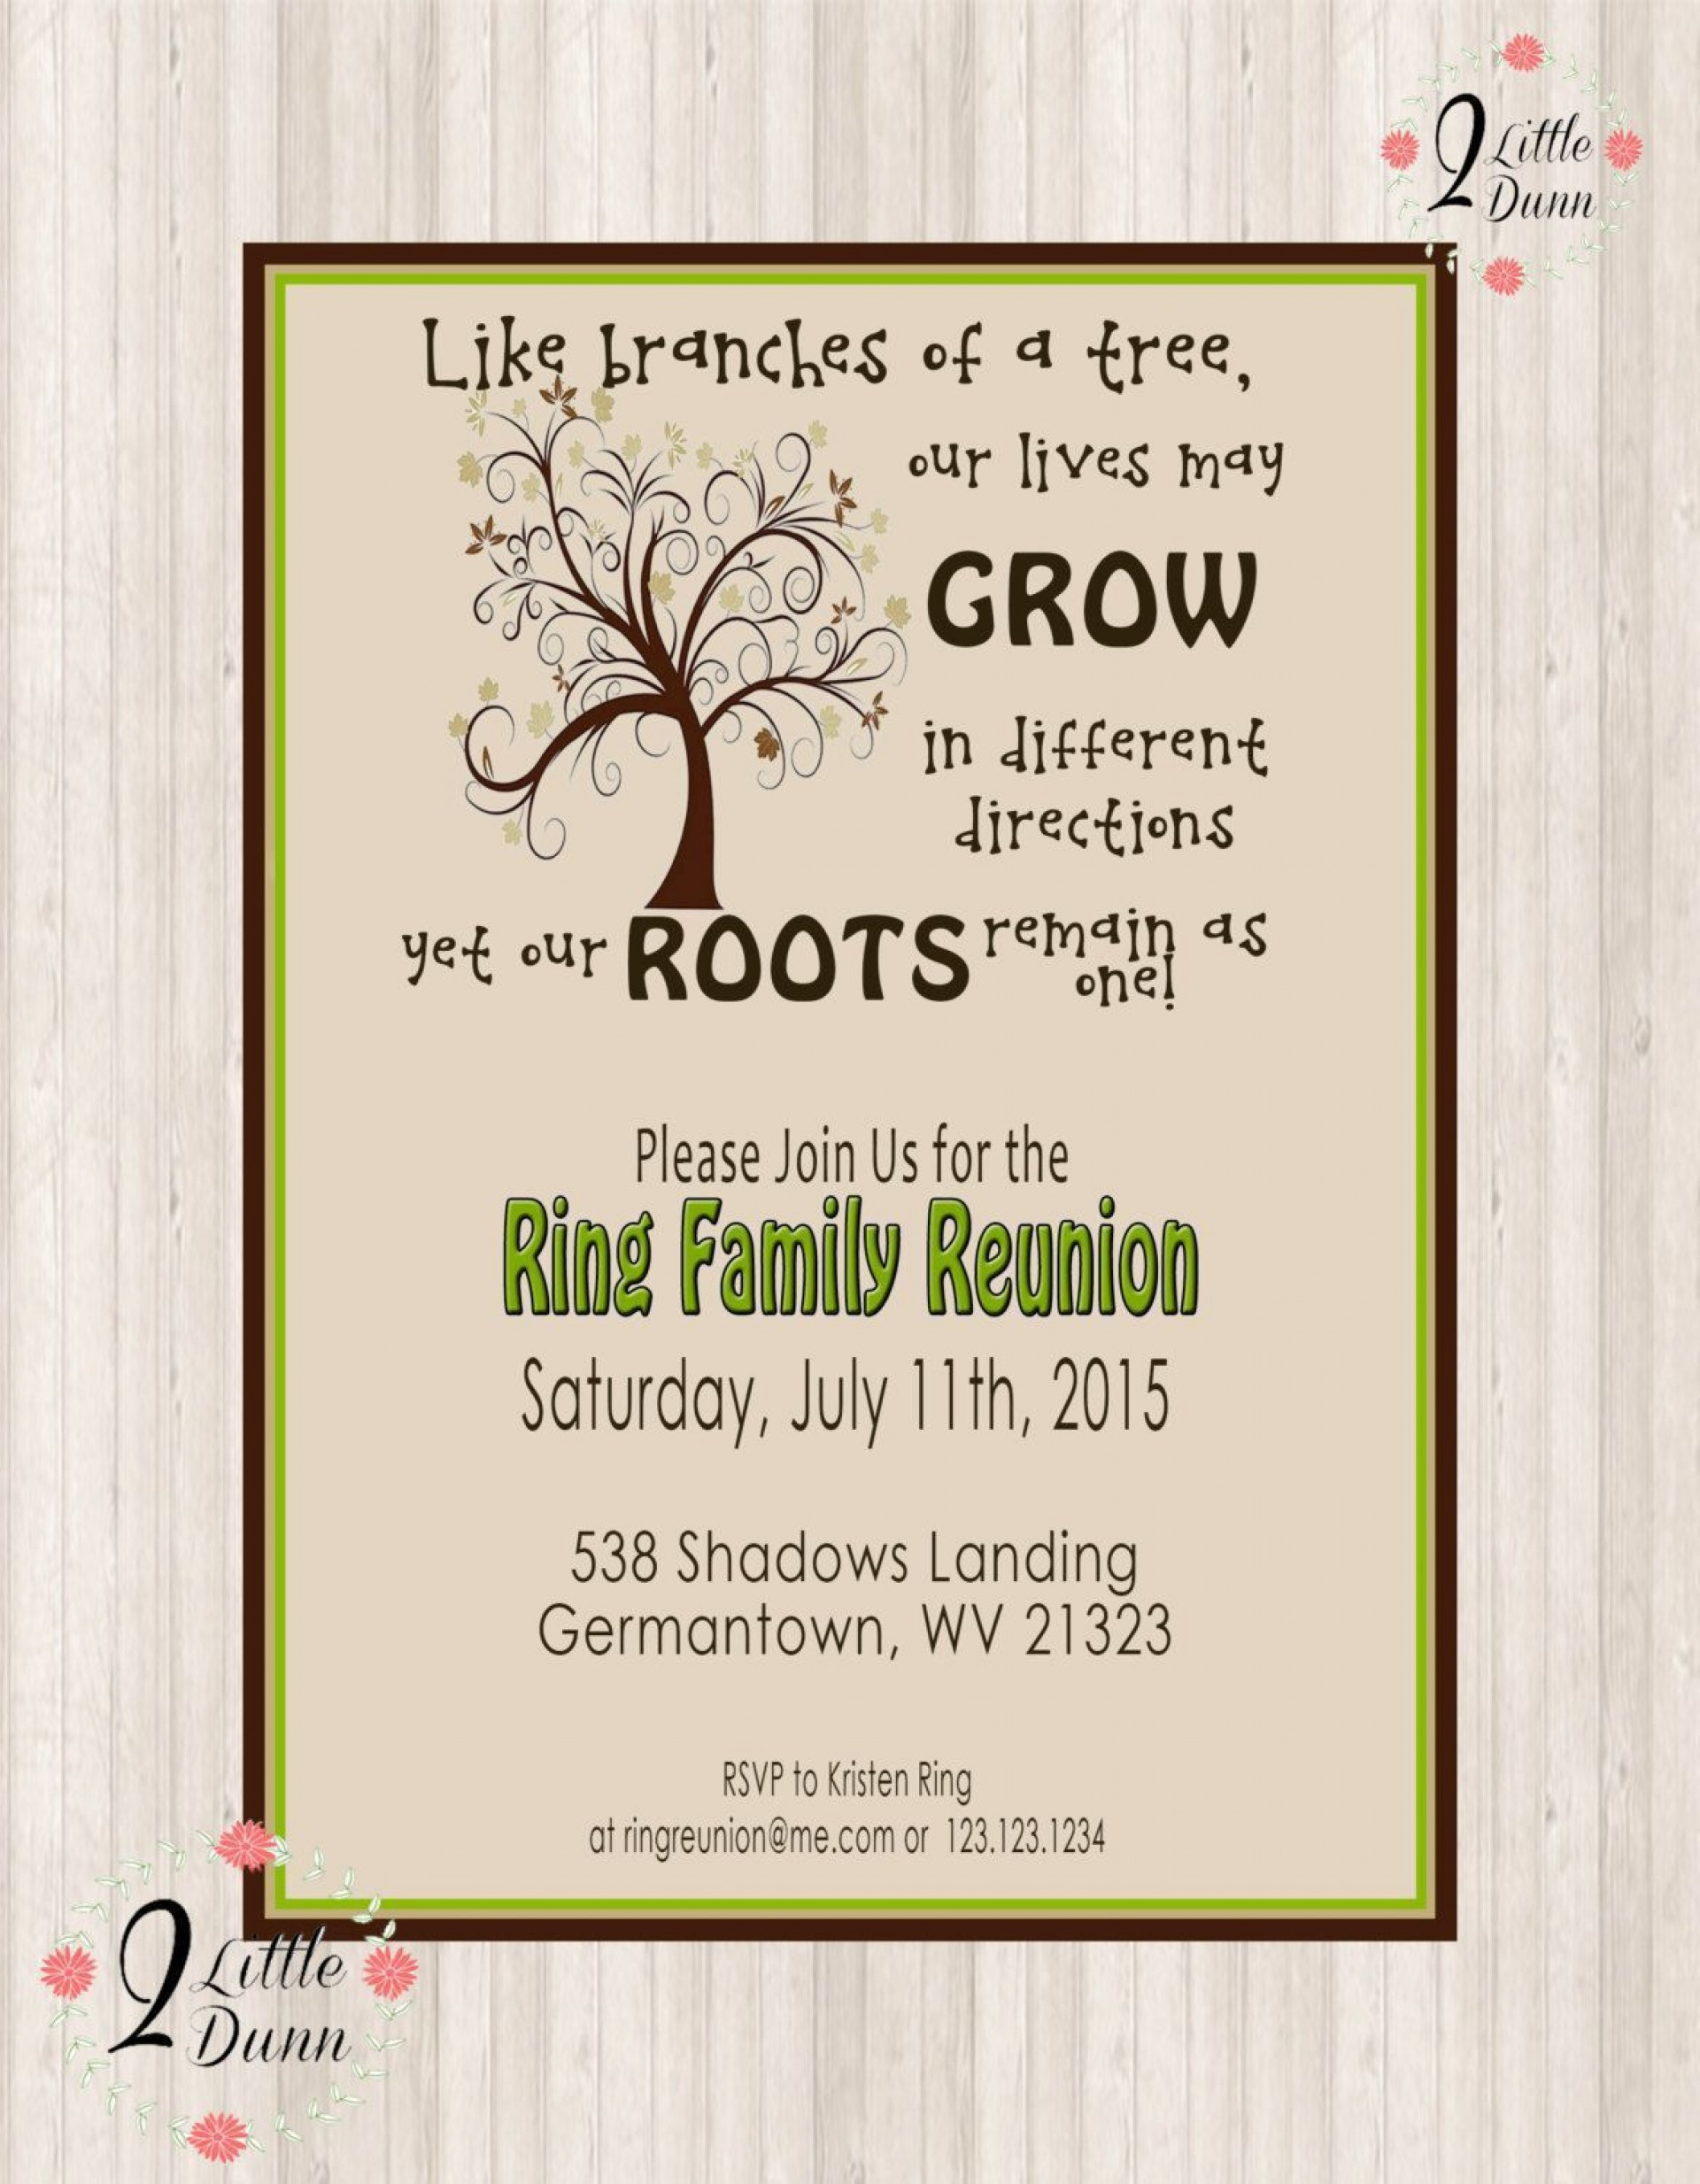 007 Fantastic Free Printable Family Reunion Invitation Template High Definition  Templates Flyer1920